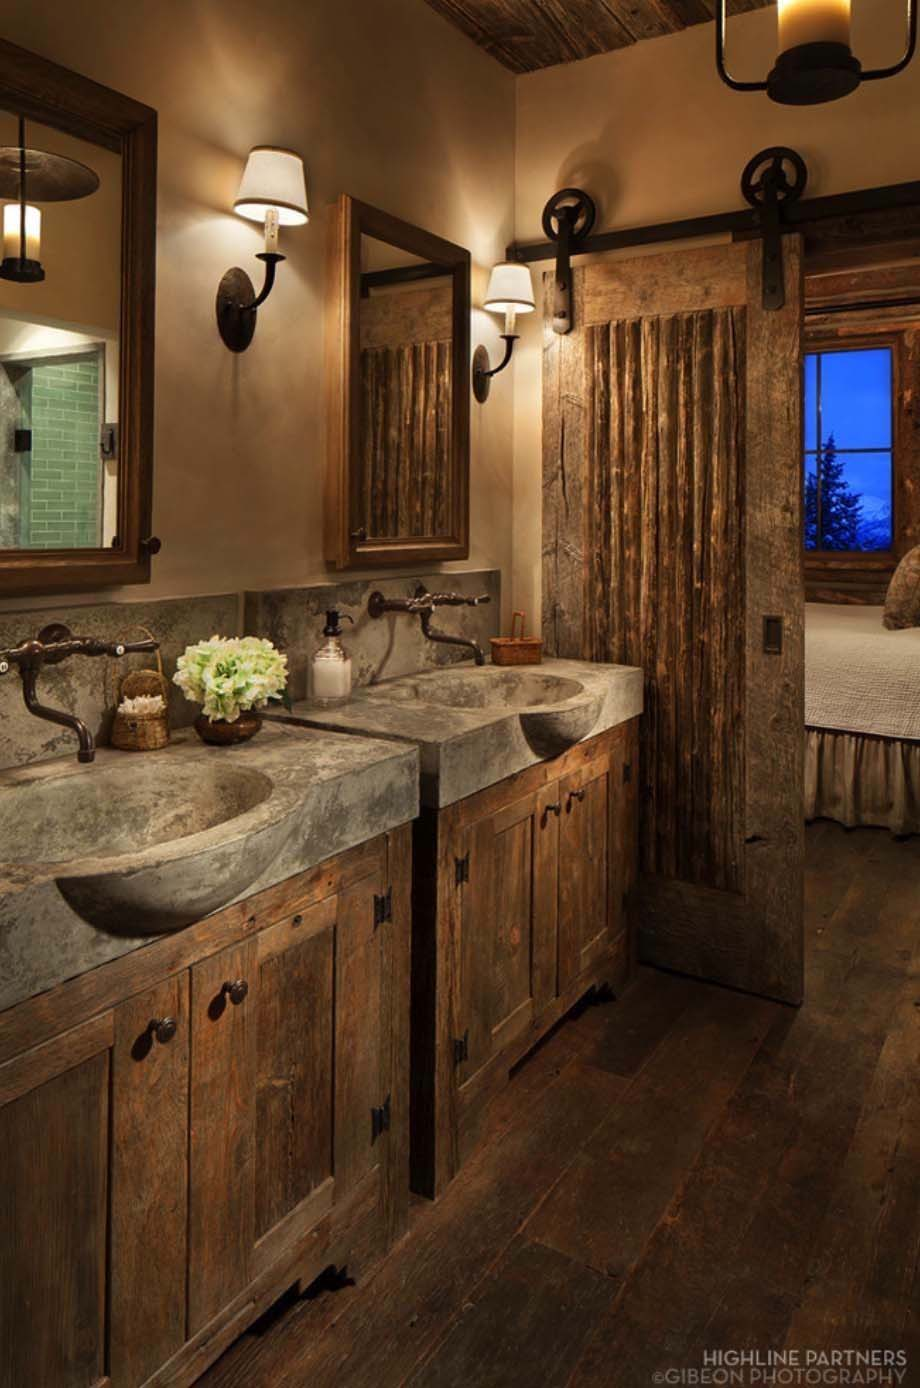 17 inspiring rustic bathroom decor ideas for cozy home for Restroom design ideas